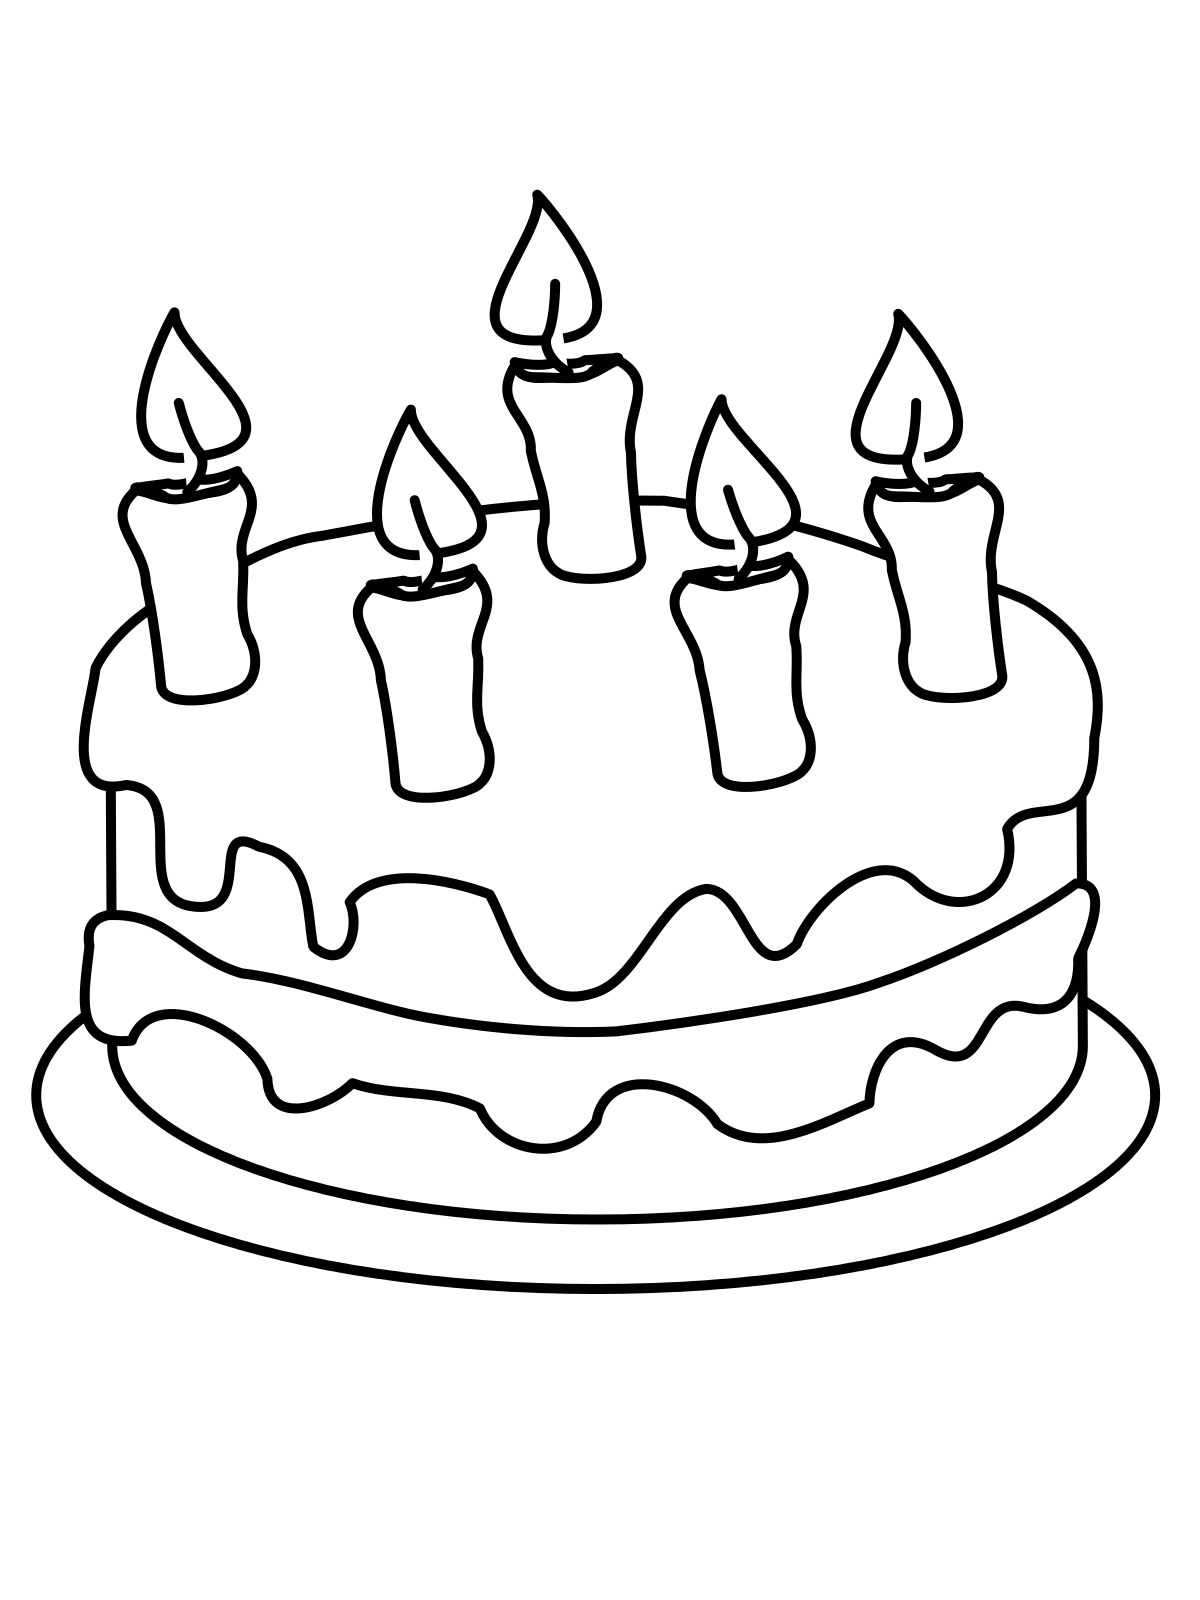 cake coloring image filedraw this birthday cakesvg wikimedia commons cake image coloring